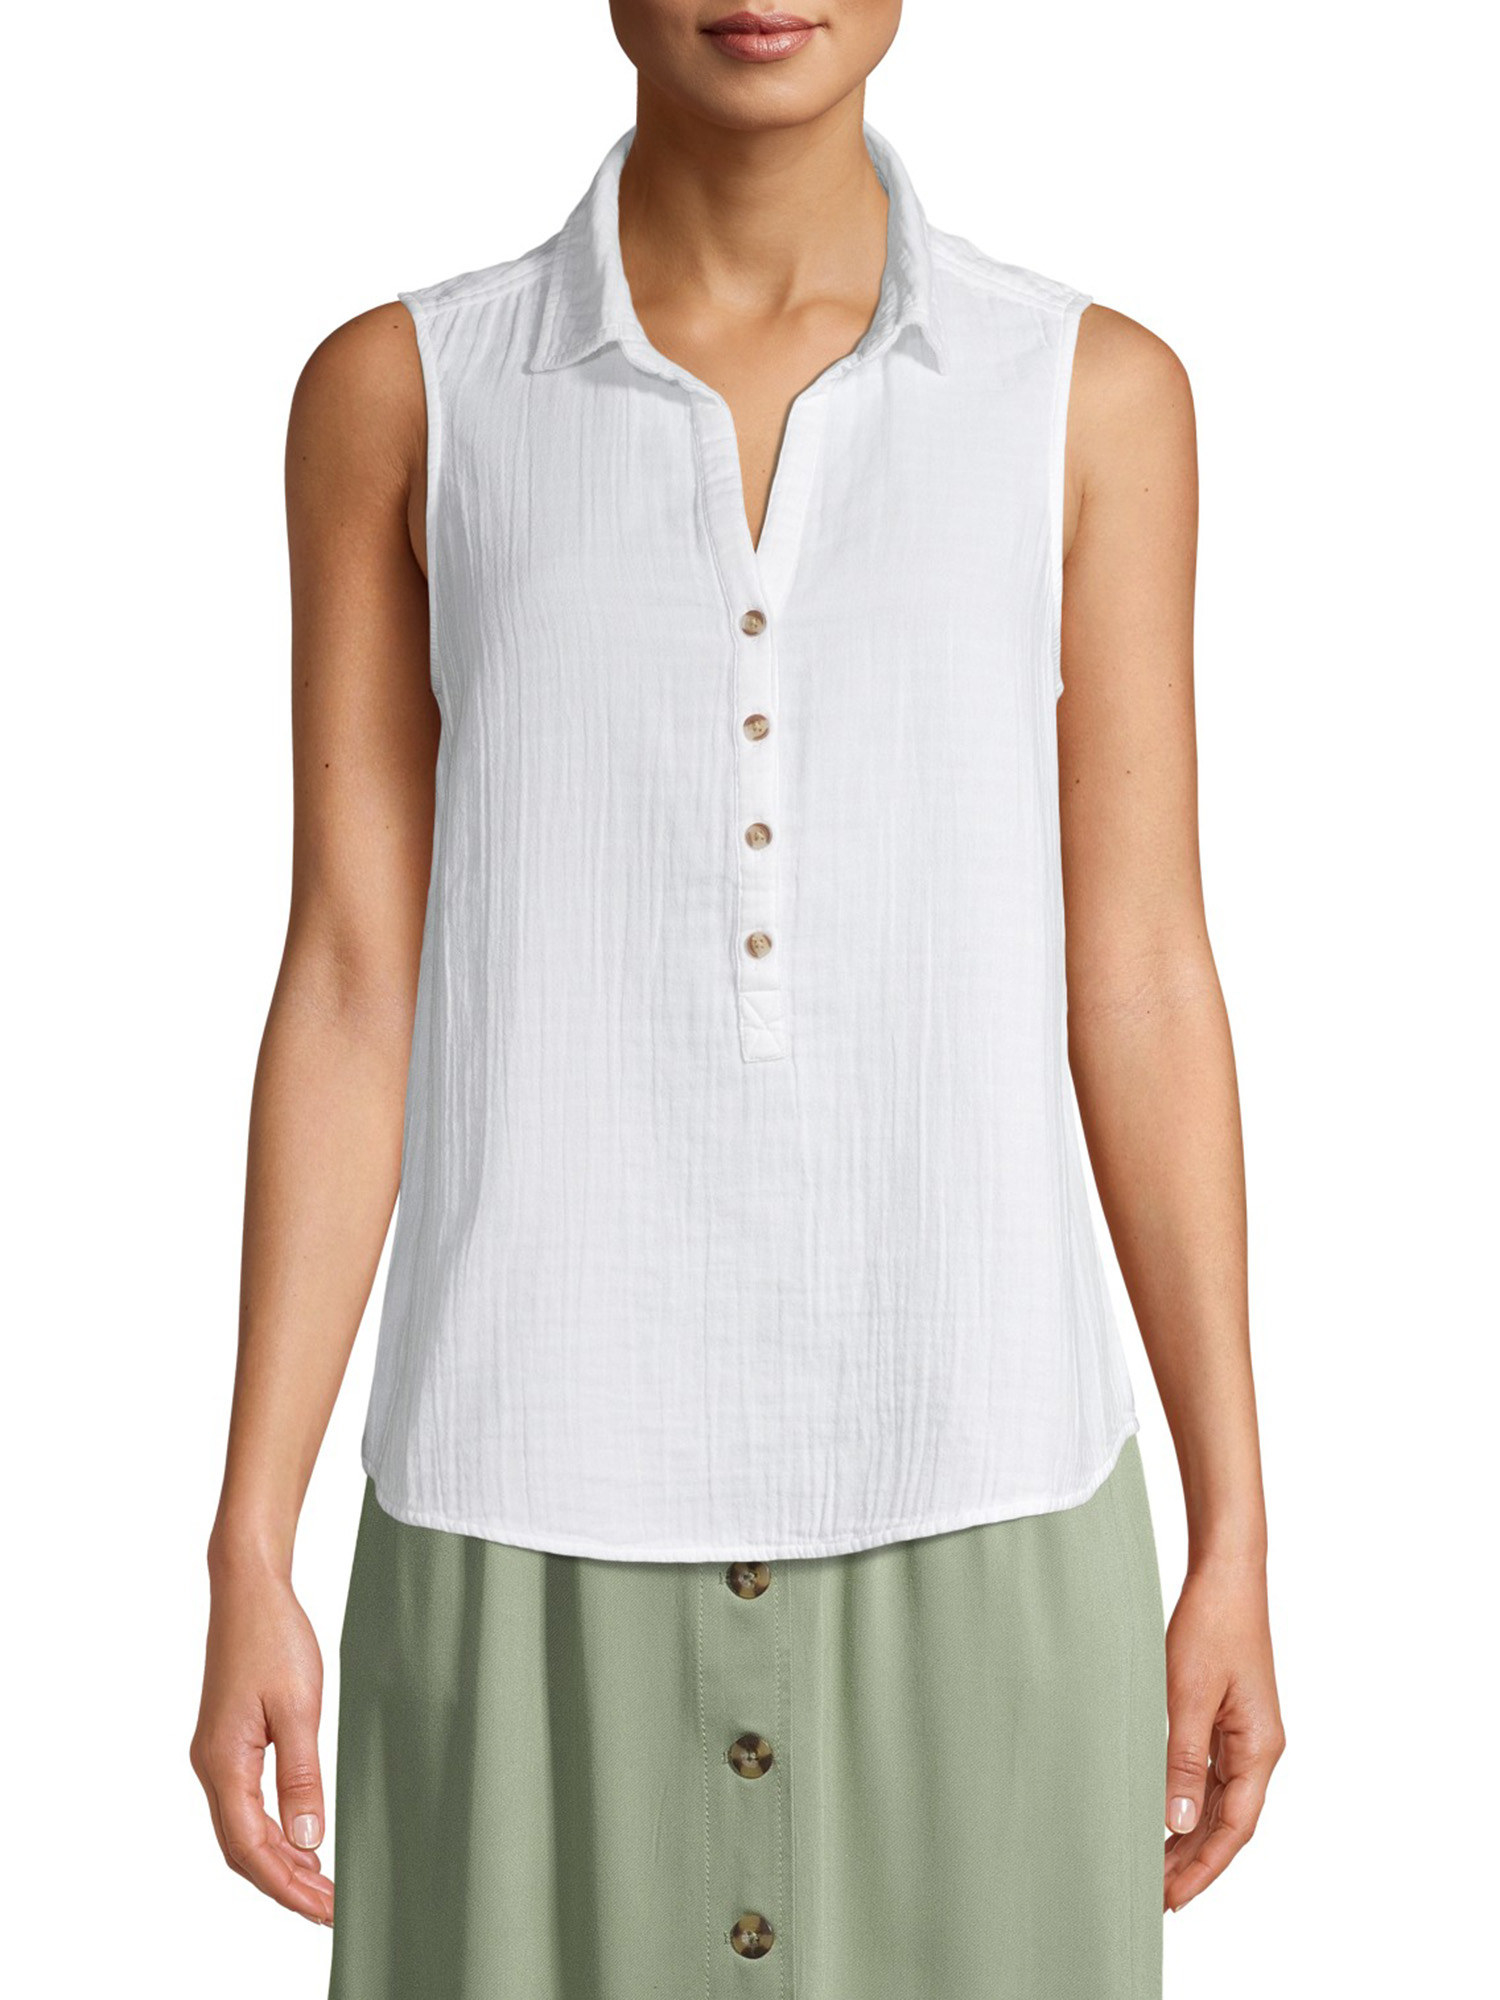 White linen tank with buttons up from the middle to the top